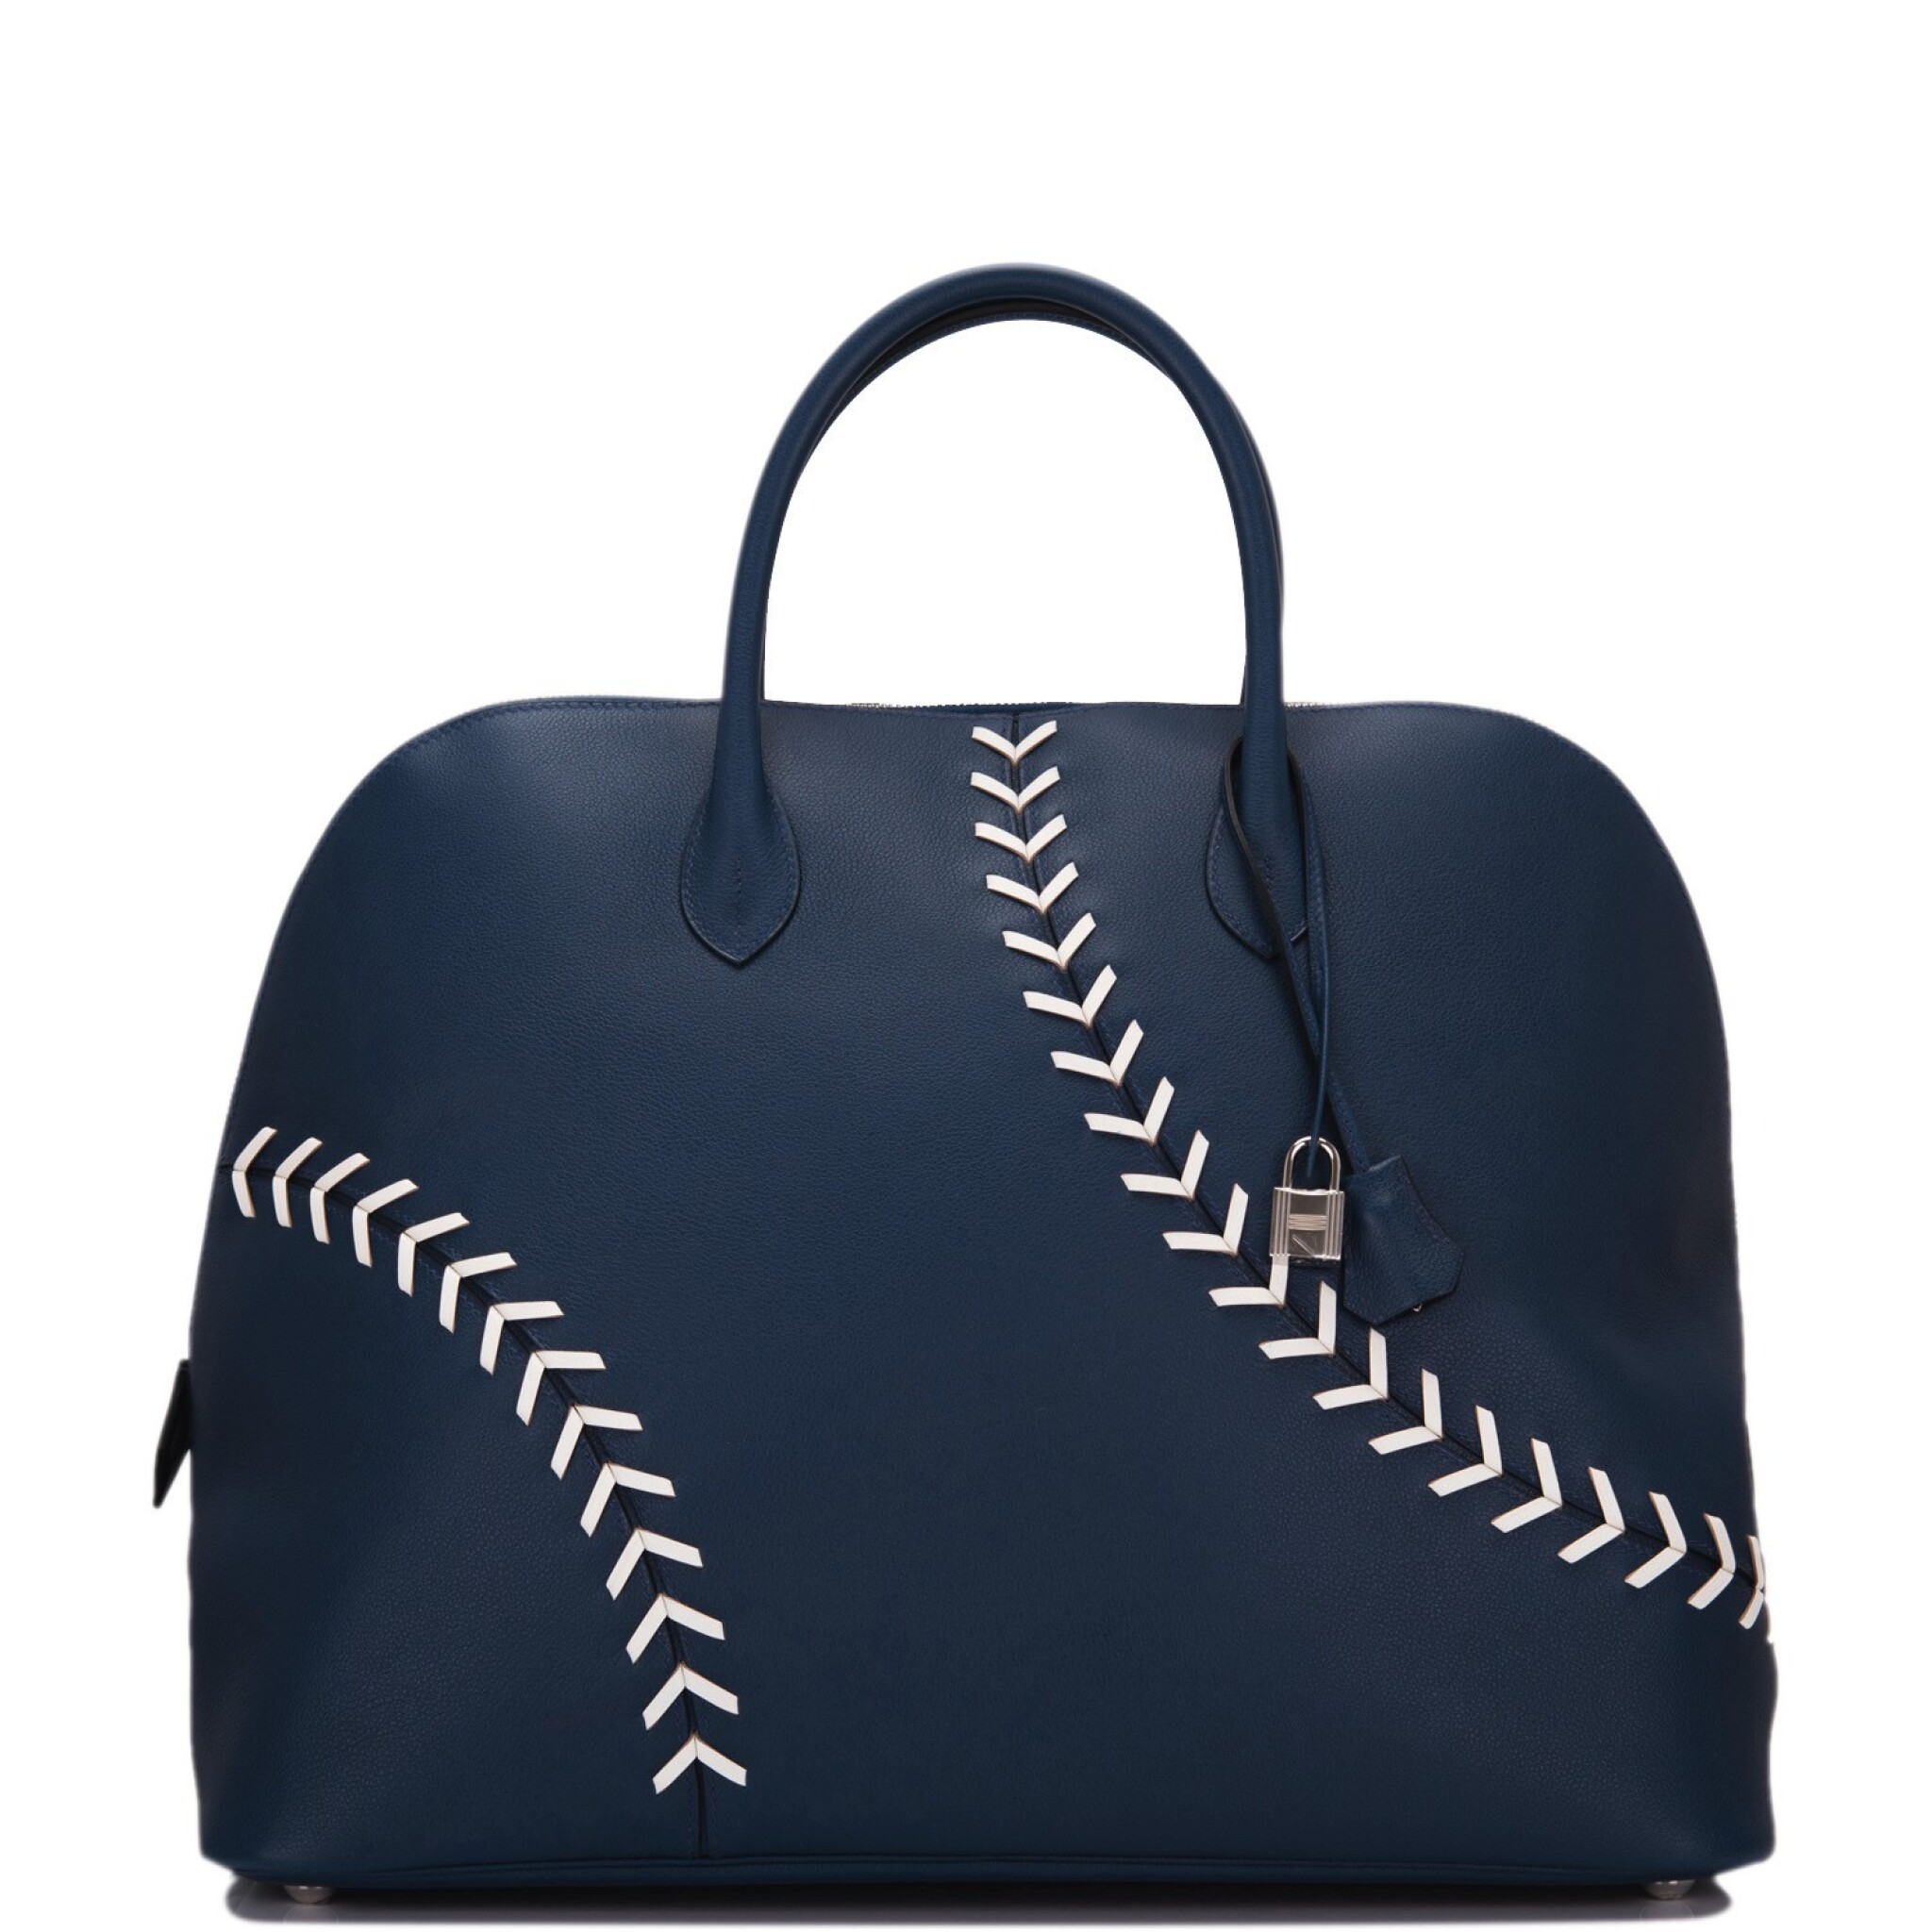 View full screen - View 1 of Lot 17. Hermès Baseball Bolide 45cm in Bleu de Malte Evercolor Leather with Palladium Hardware.